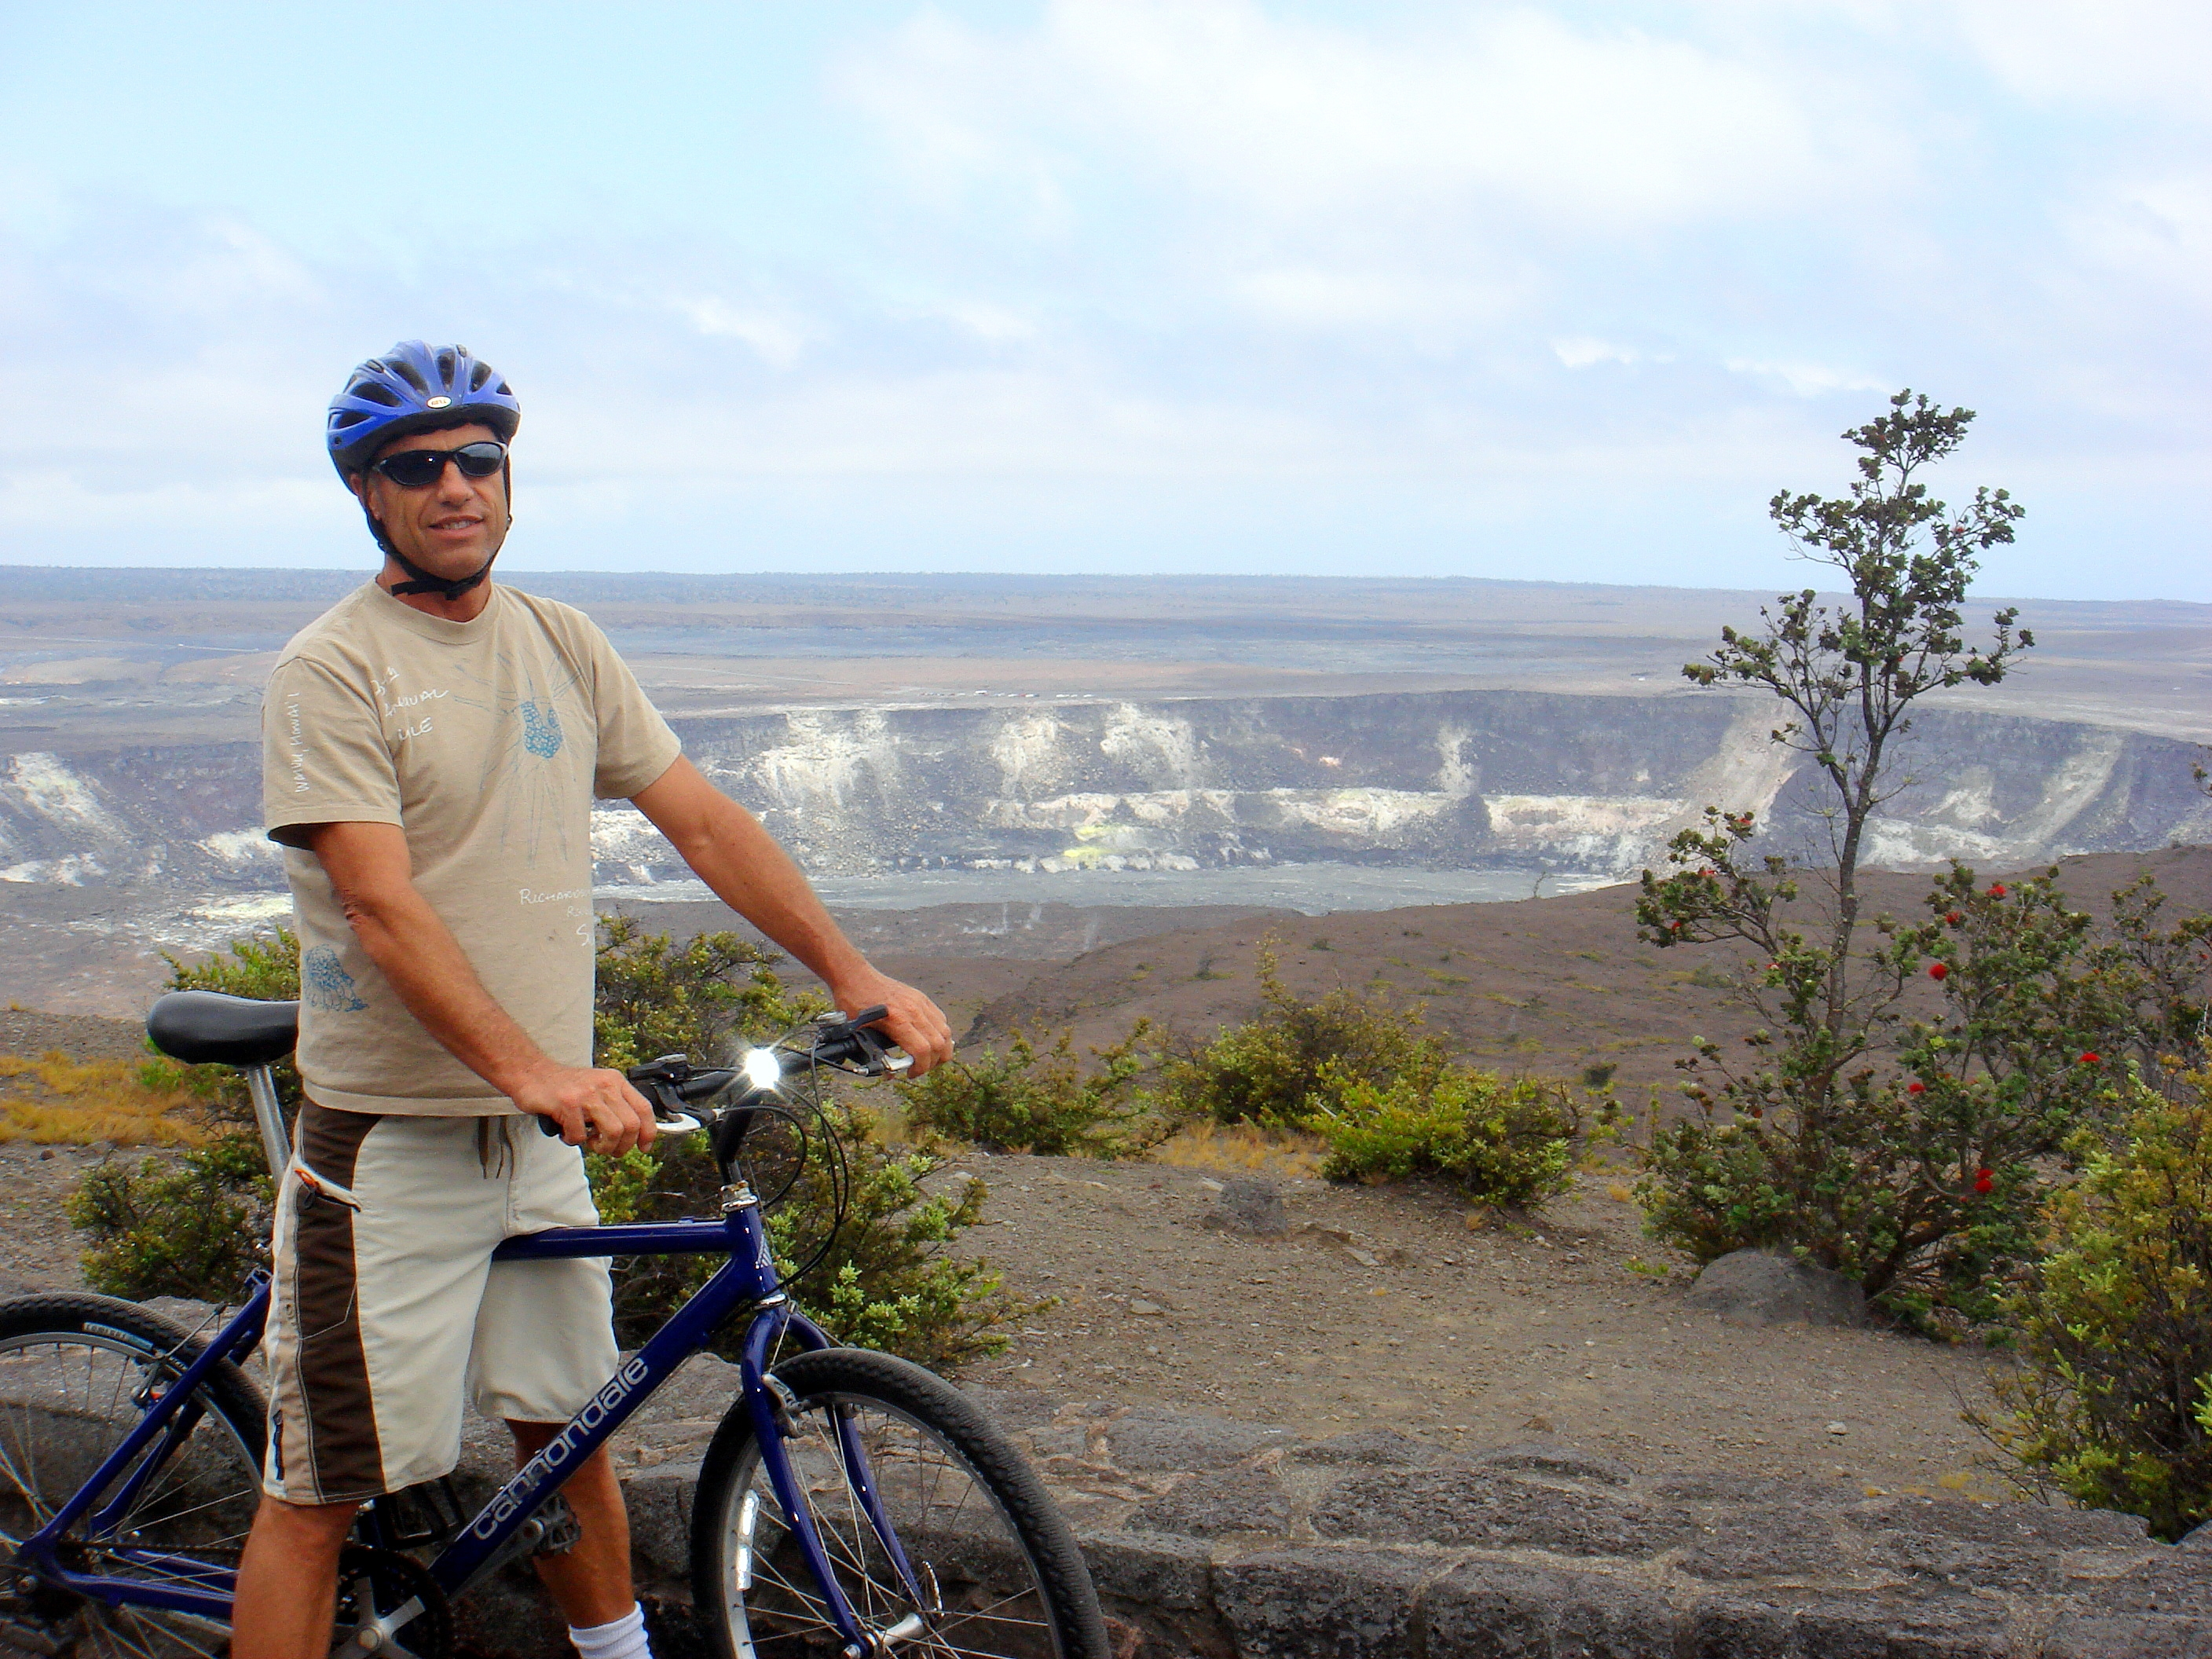 Bike Hawaii Tripadvisor Bike Kilauea Volcano amp Wine